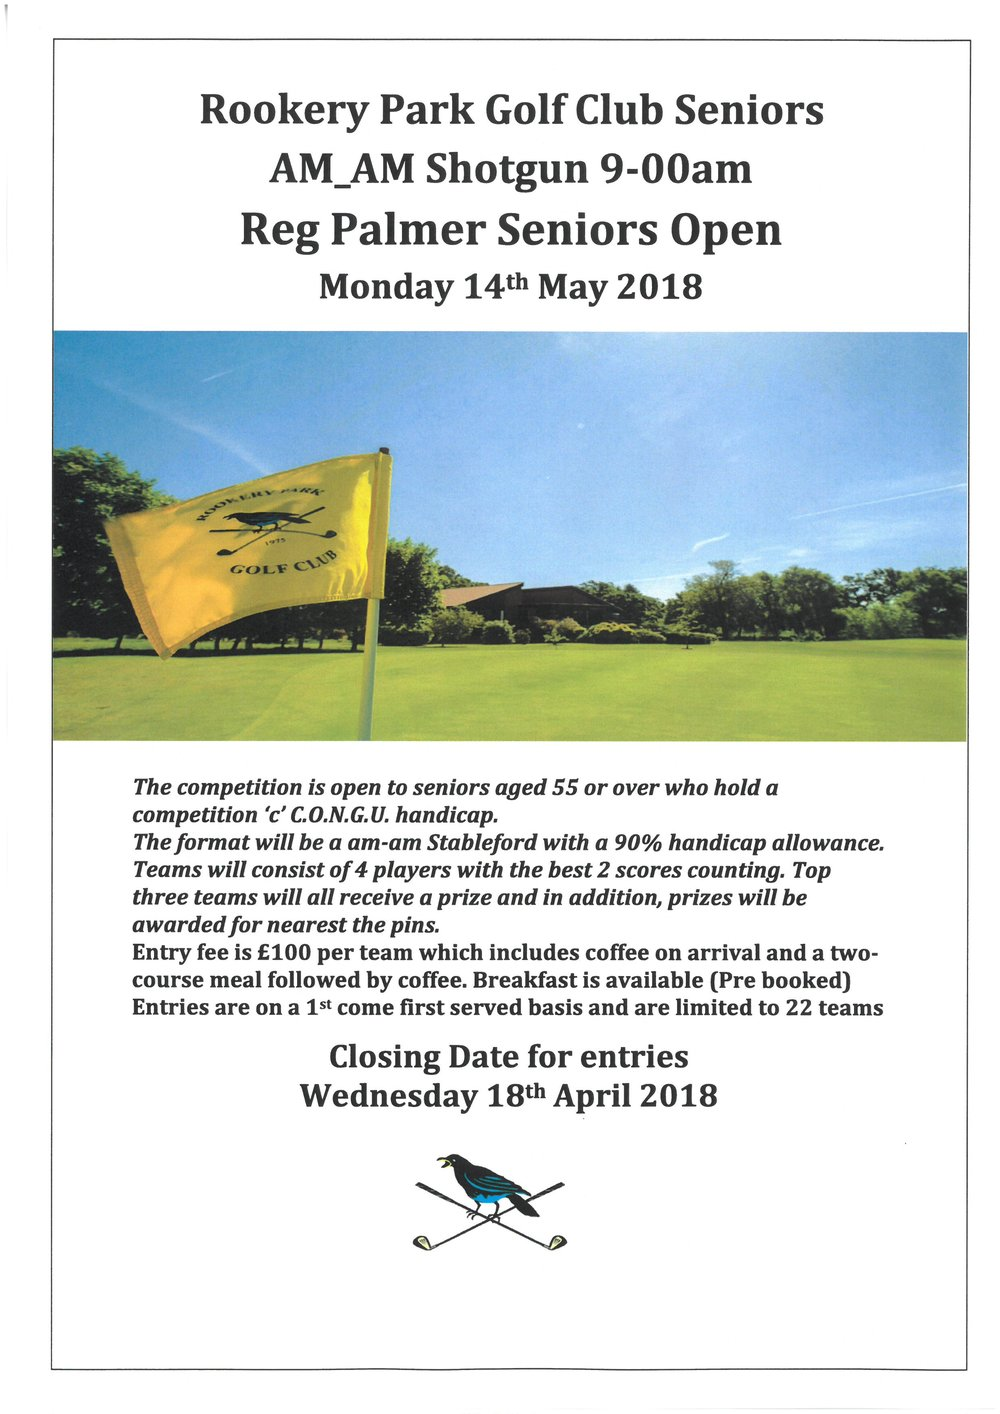 Reg Palmer Open 2018 Flyer.jpg